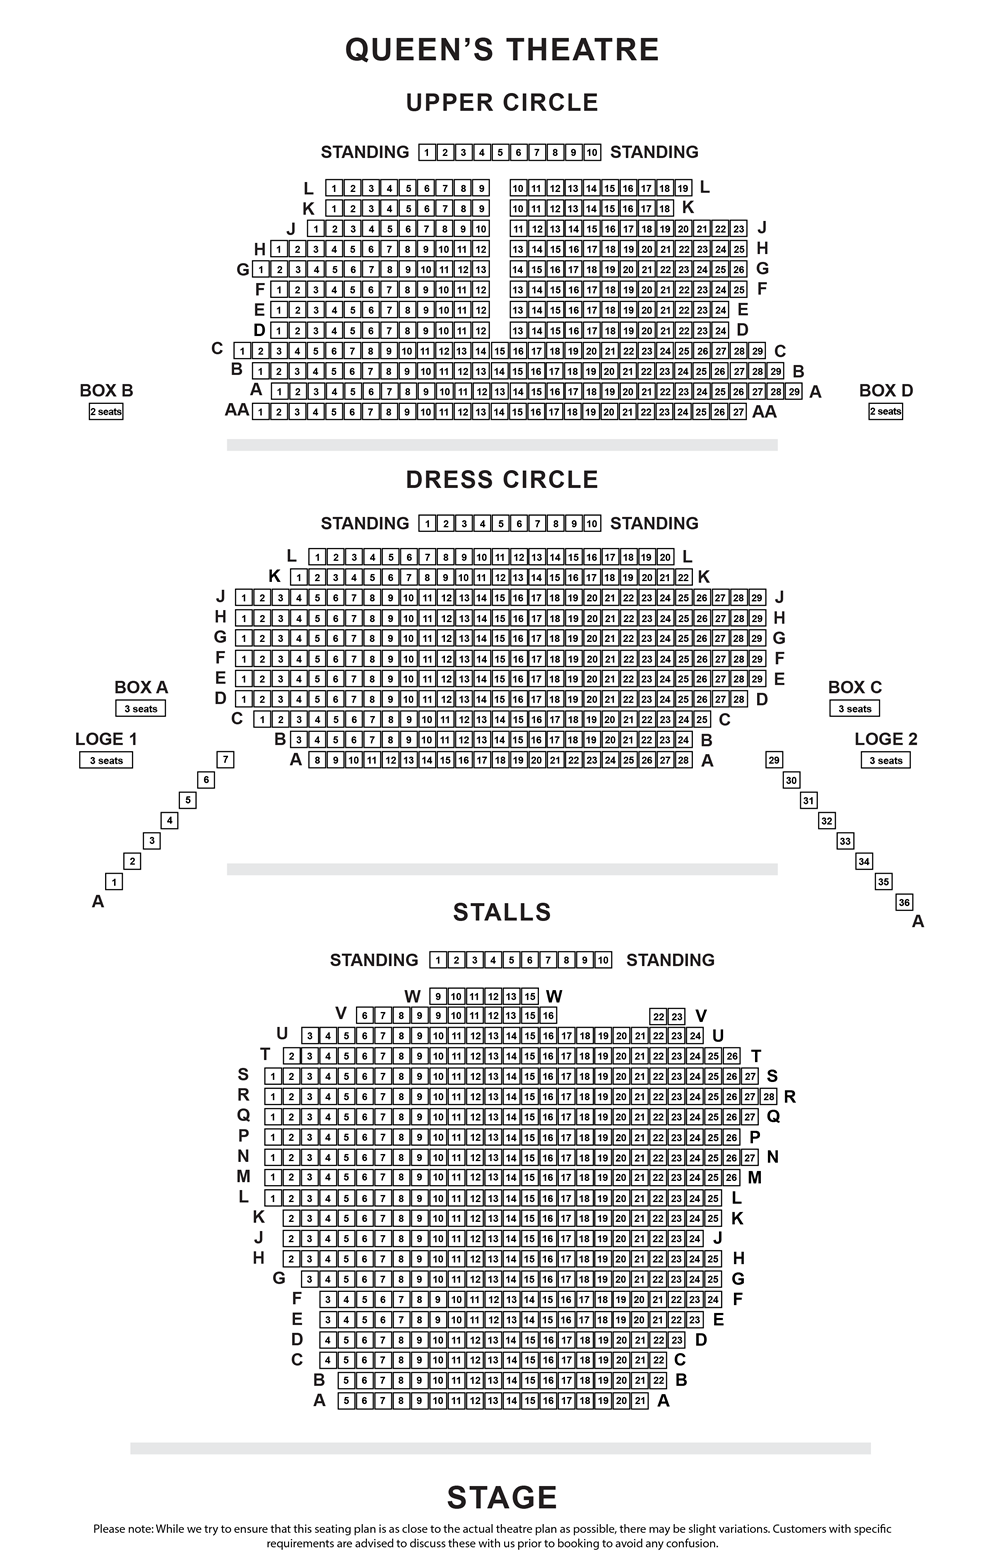 Sondheim Theatre (Queen's Theatre) seating plan